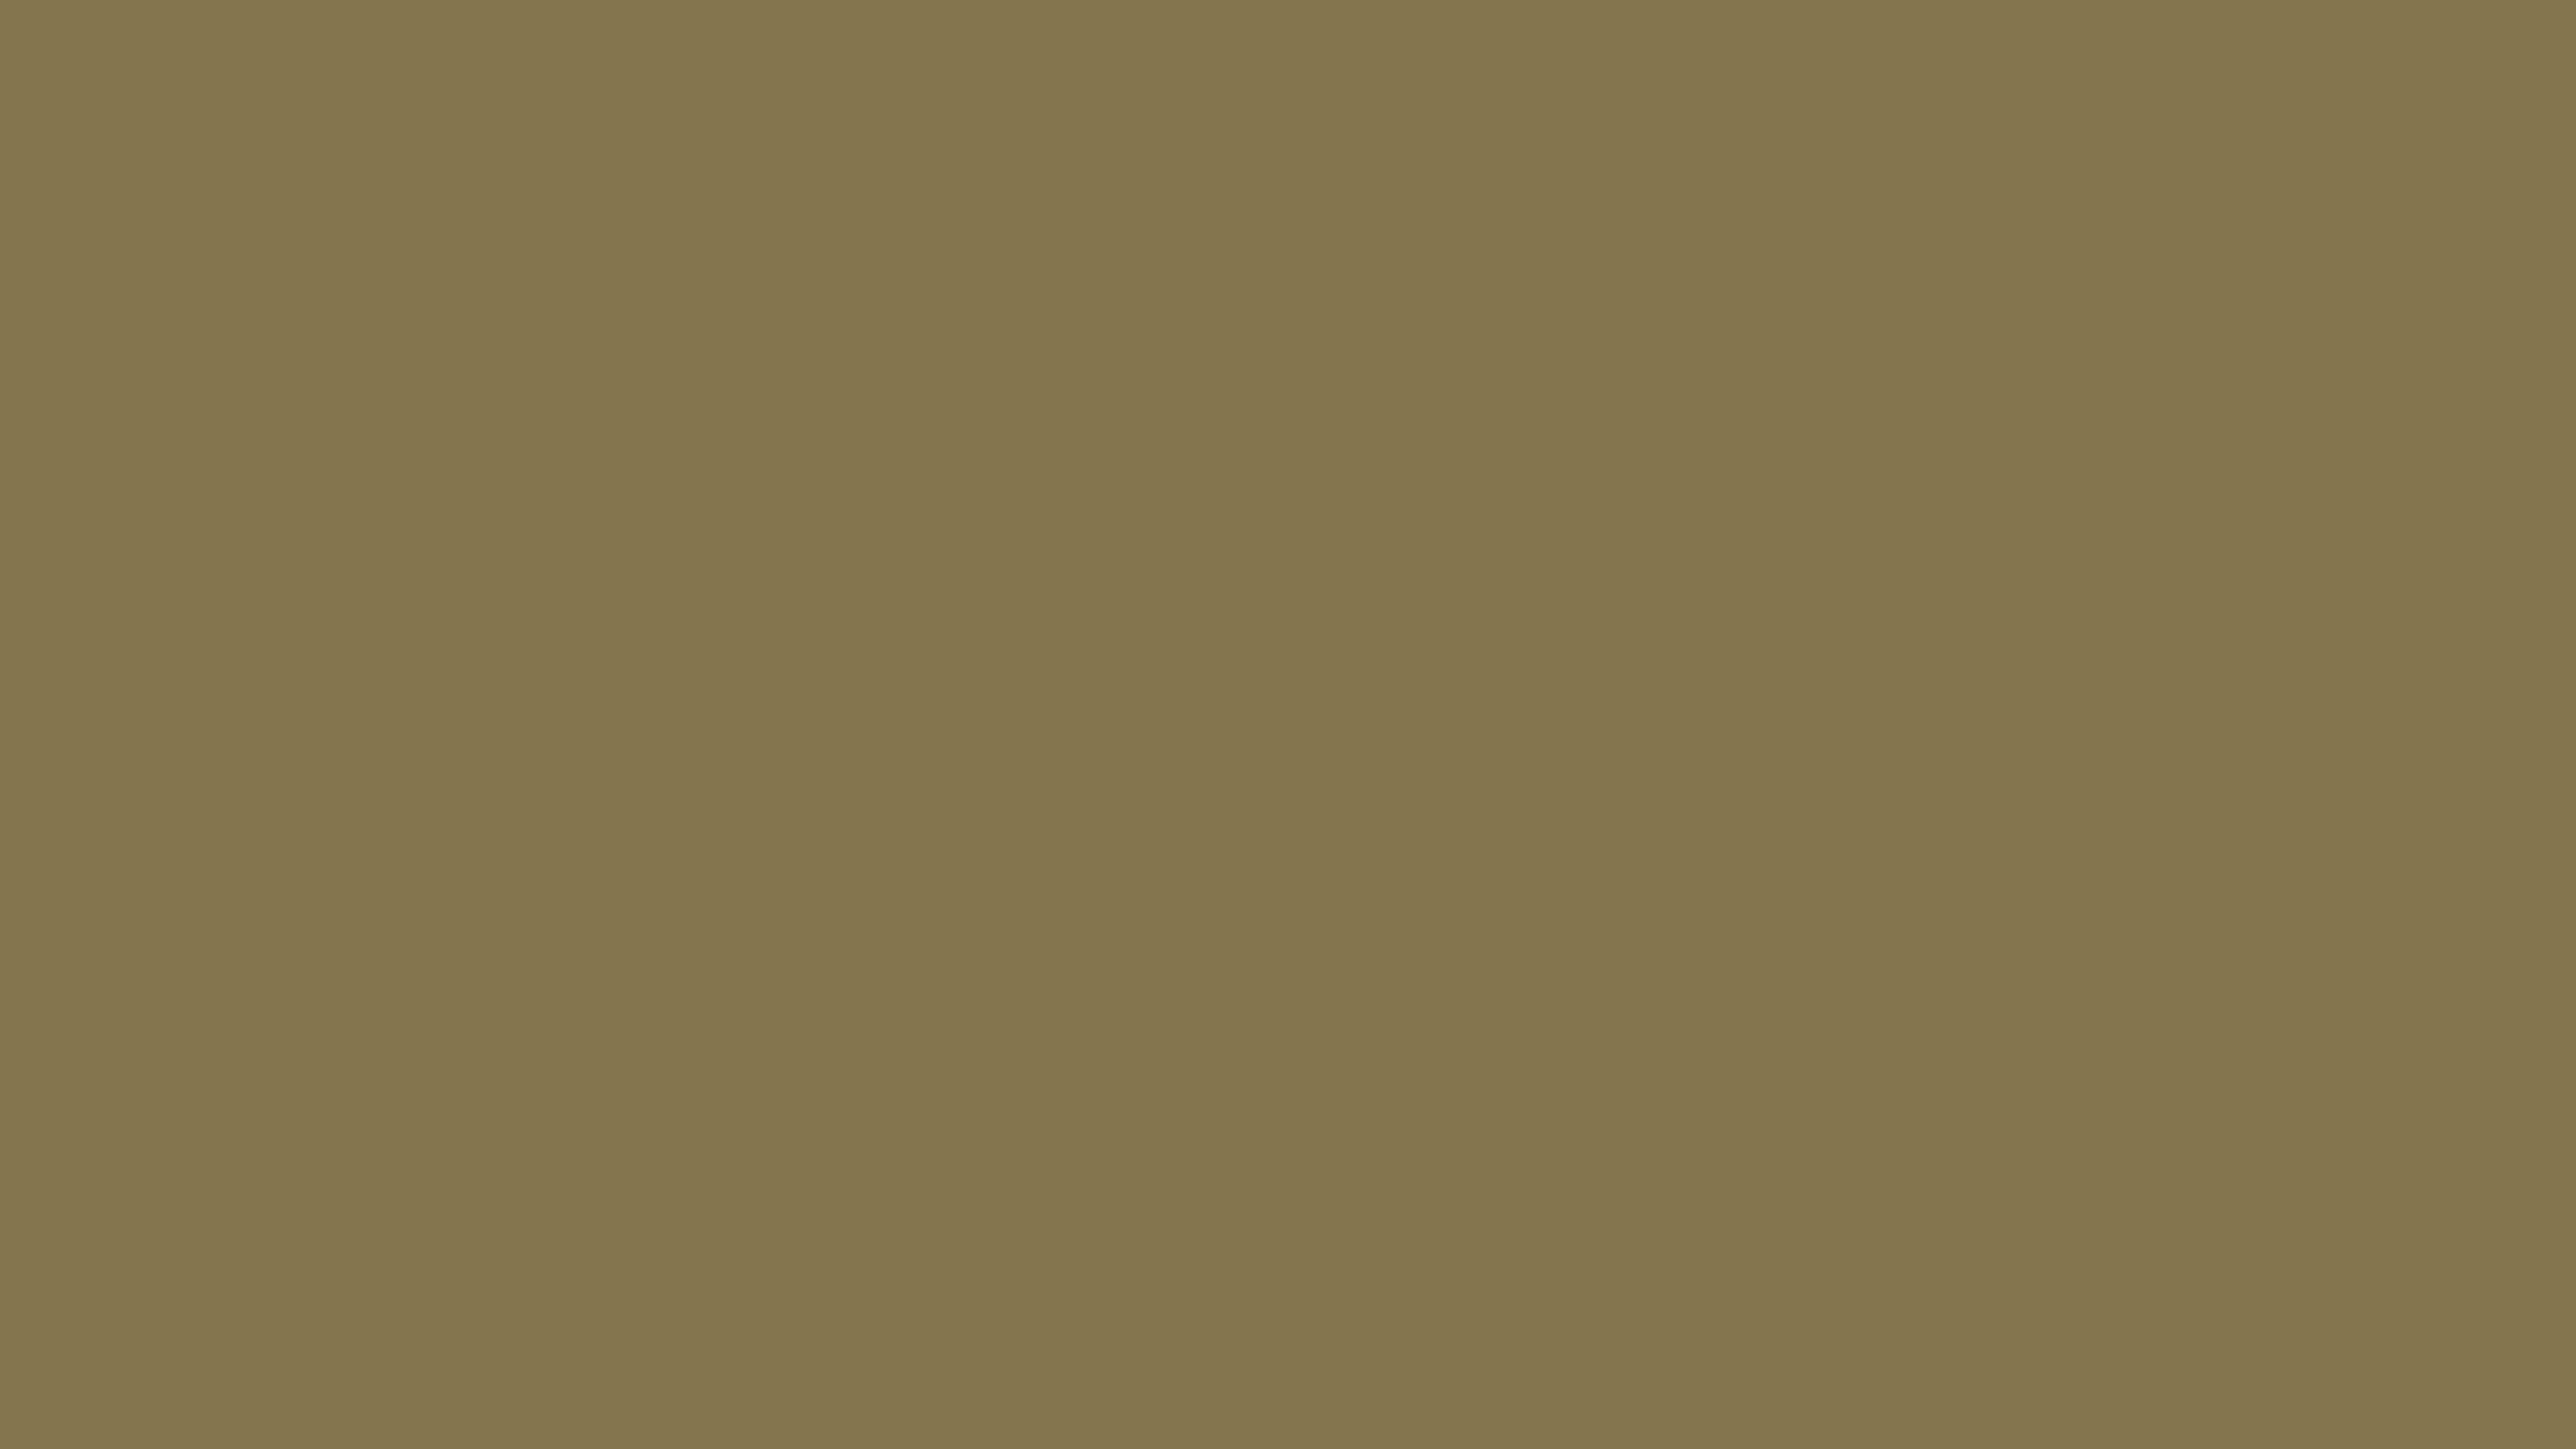 4096x2304 Gold Fusion Solid Color Background